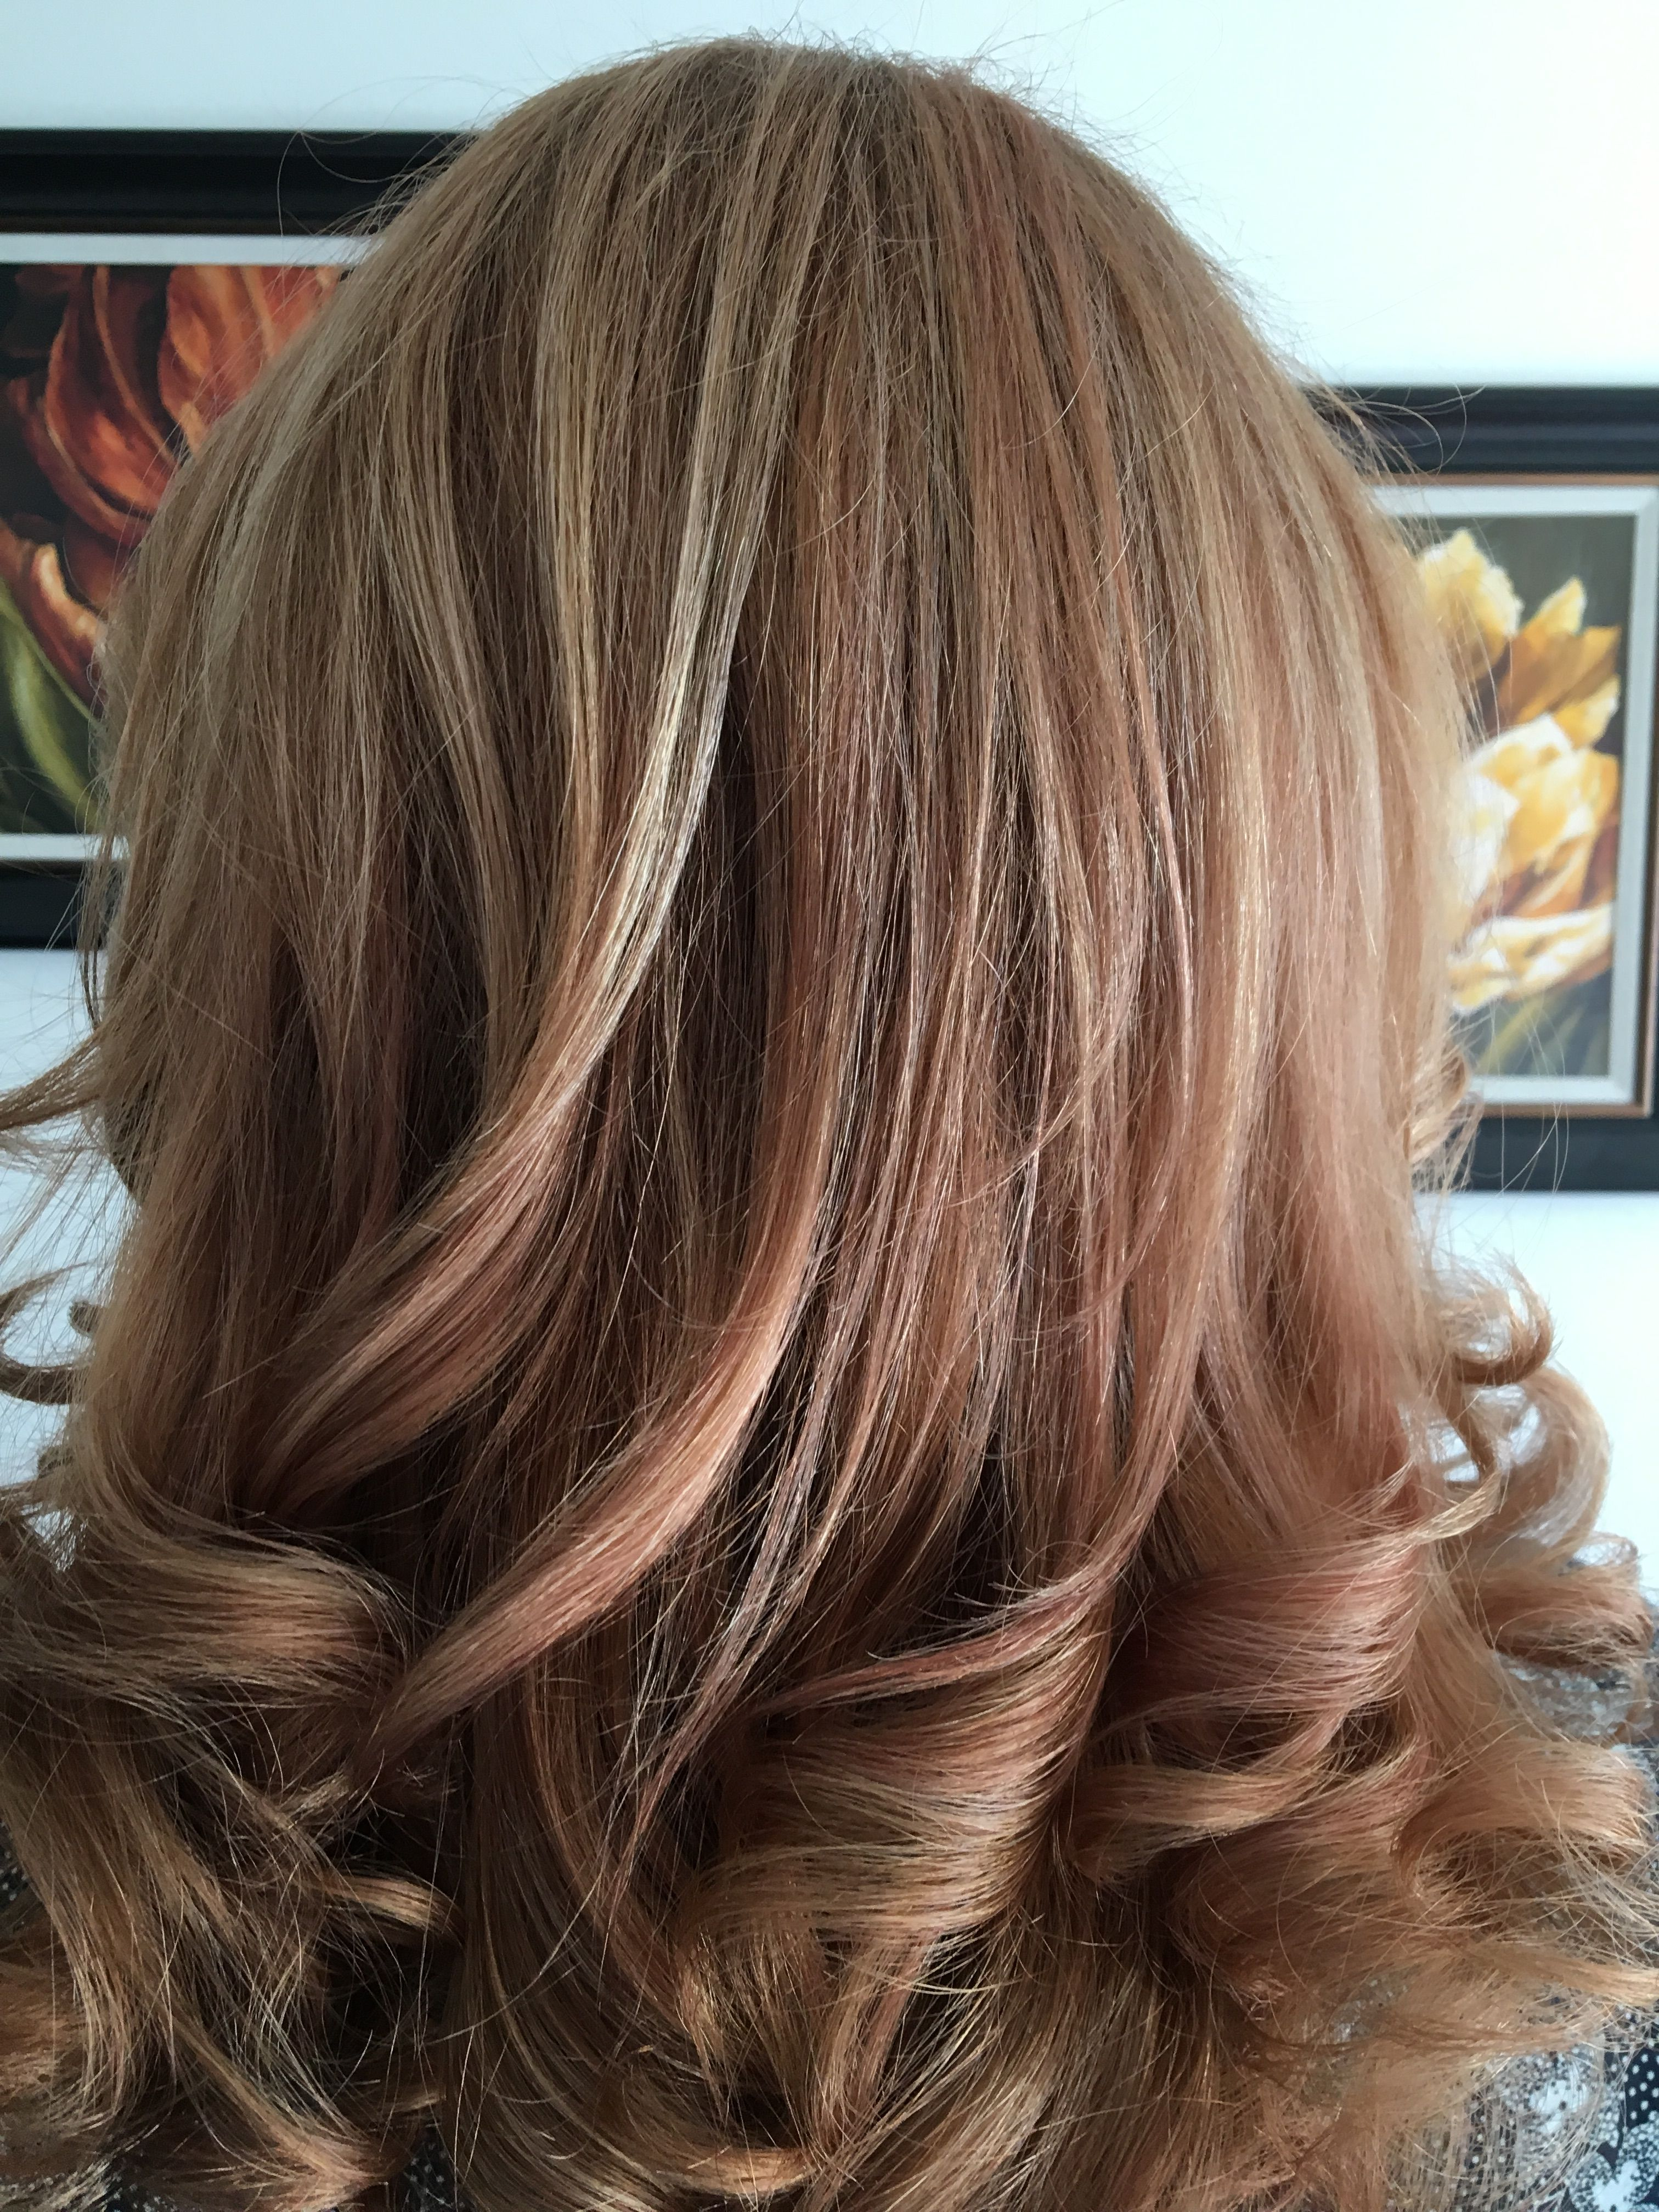 Strawberry Blonde Vs Rose Gold Love The Look Turns Out It Has A